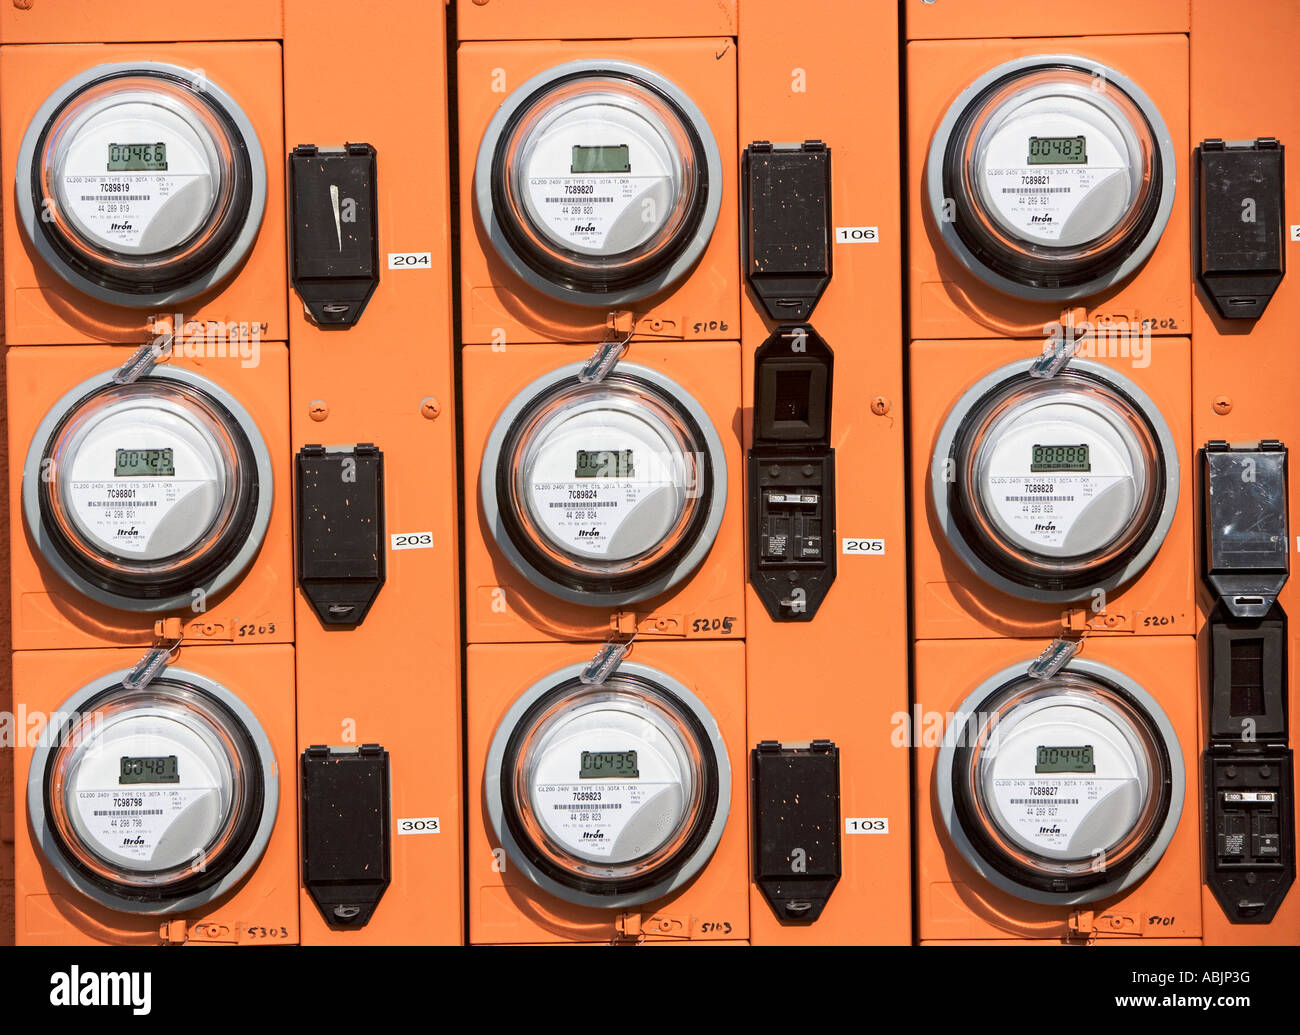 Rows of electric meters - Stock Image